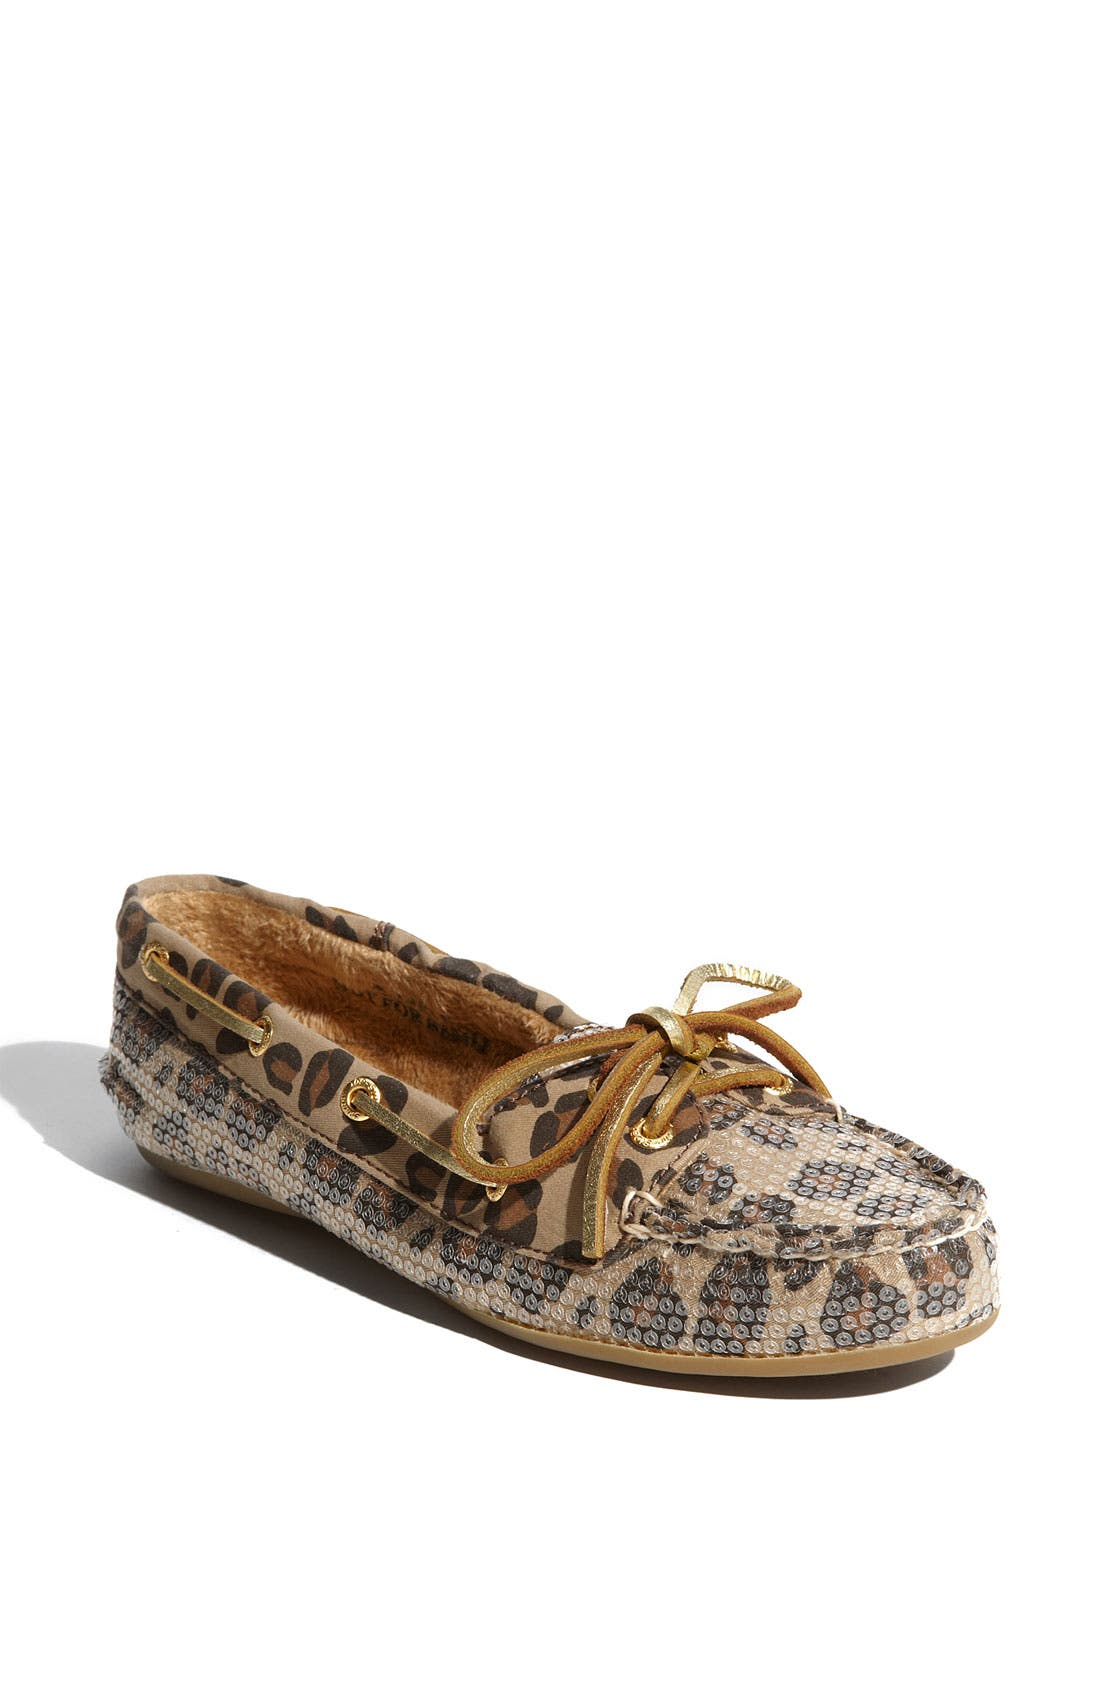 Alternate Image 1 Selected - Sperry Top-Sider® 'Skiff' Moccasin Slip-On